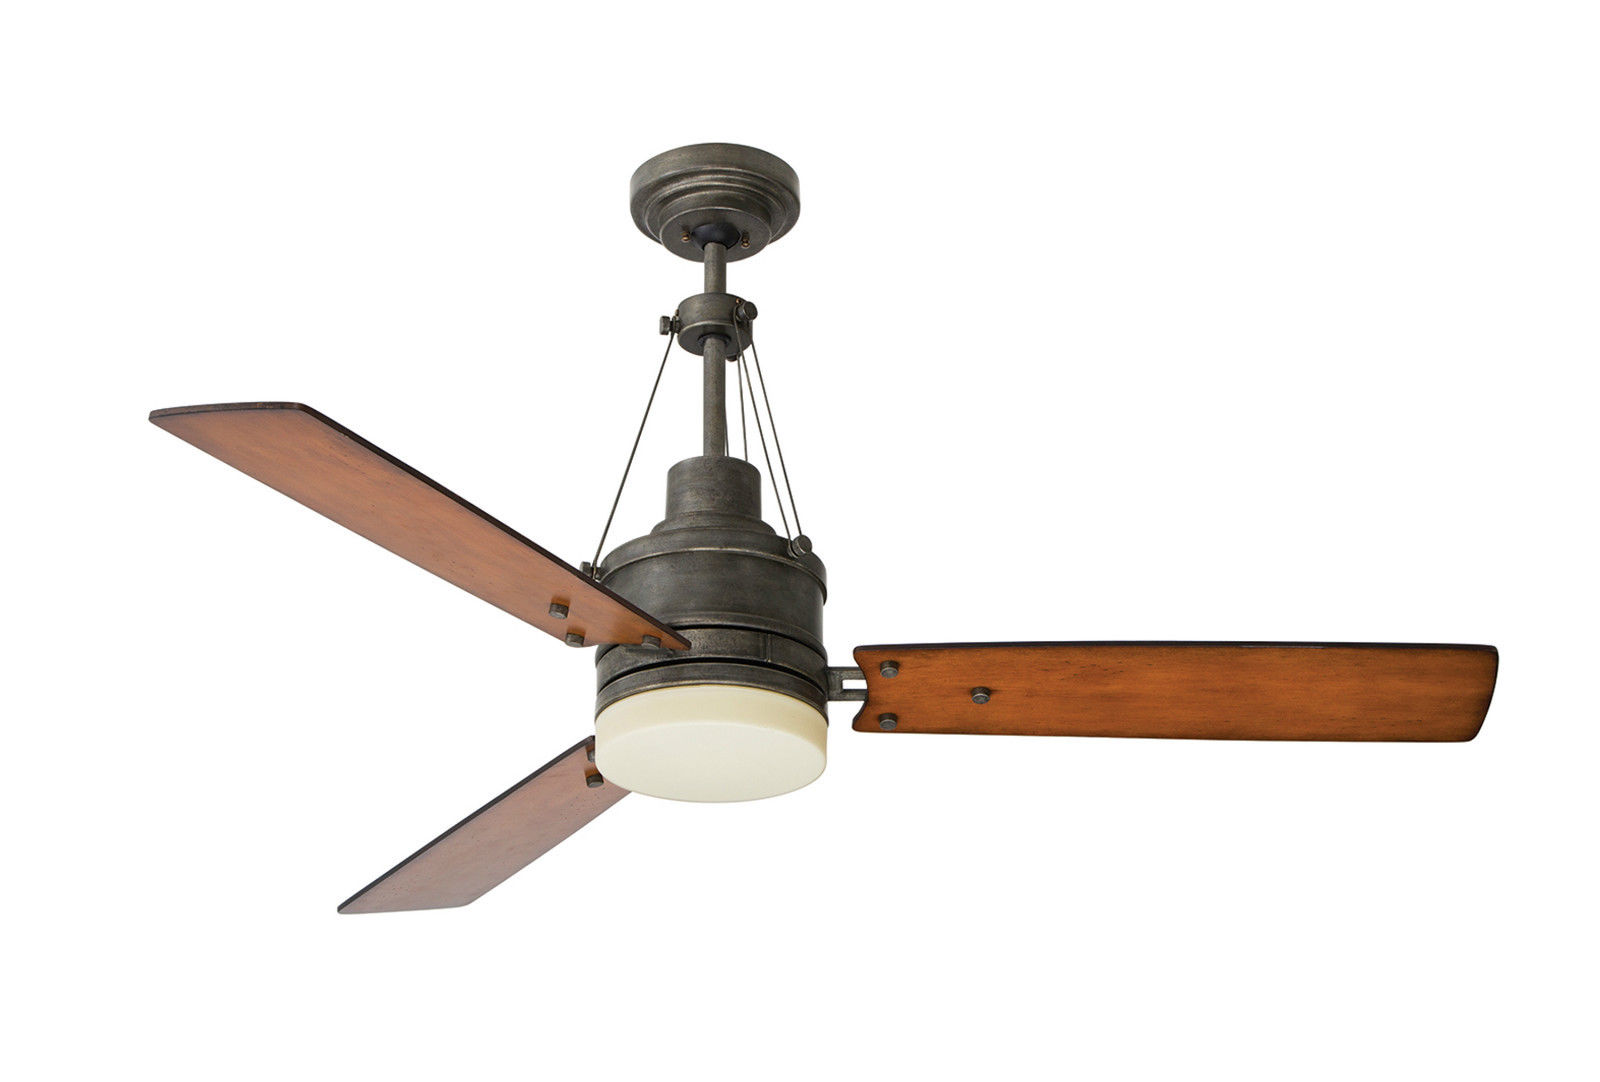 Antique ceiling fans bring the industrial flavor to the interior